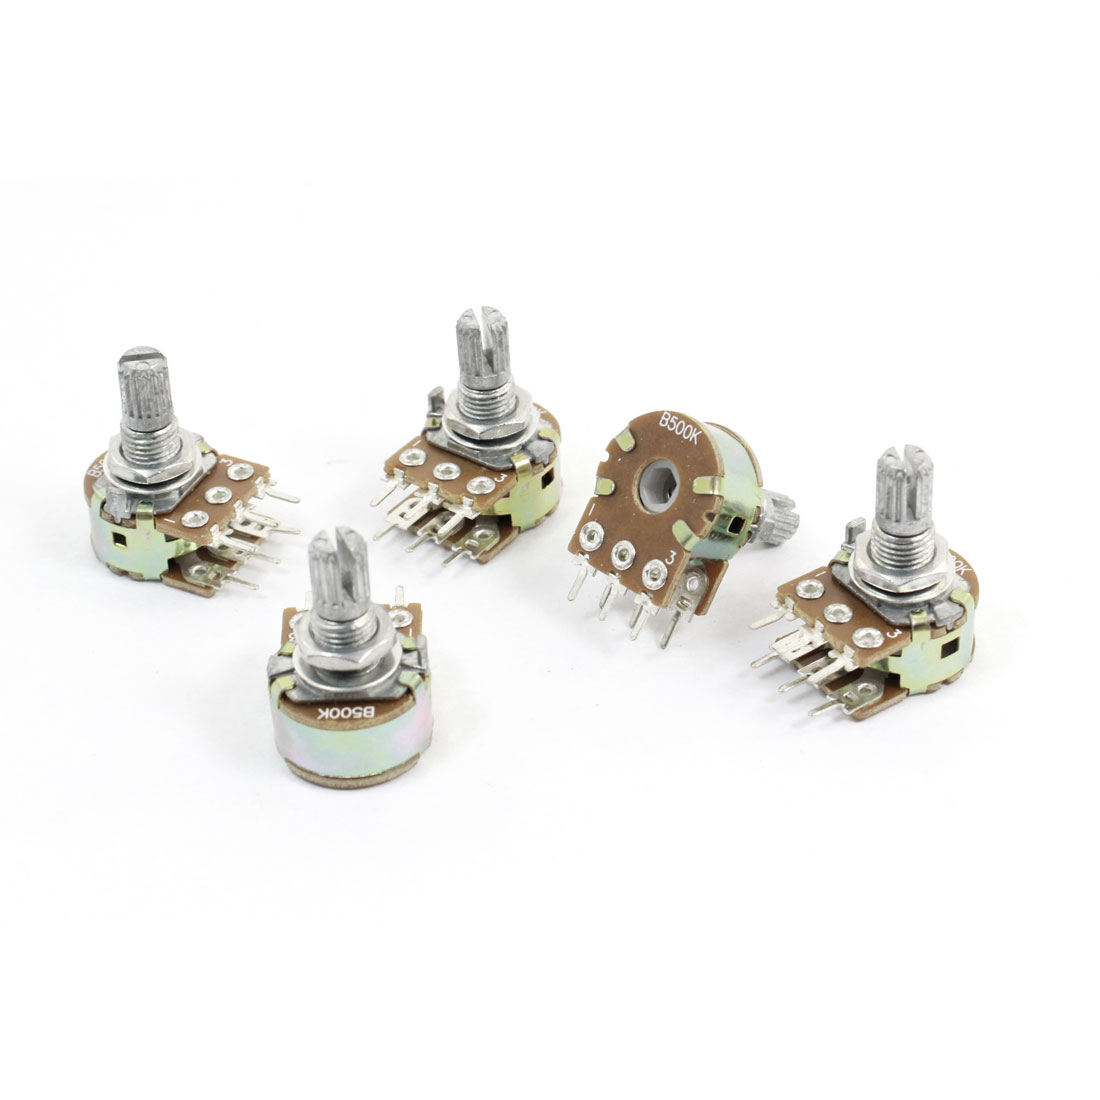 5 Pcs 500K Ohm Knurled Shaft Adjust Double Linear Potentiometers AC 250V